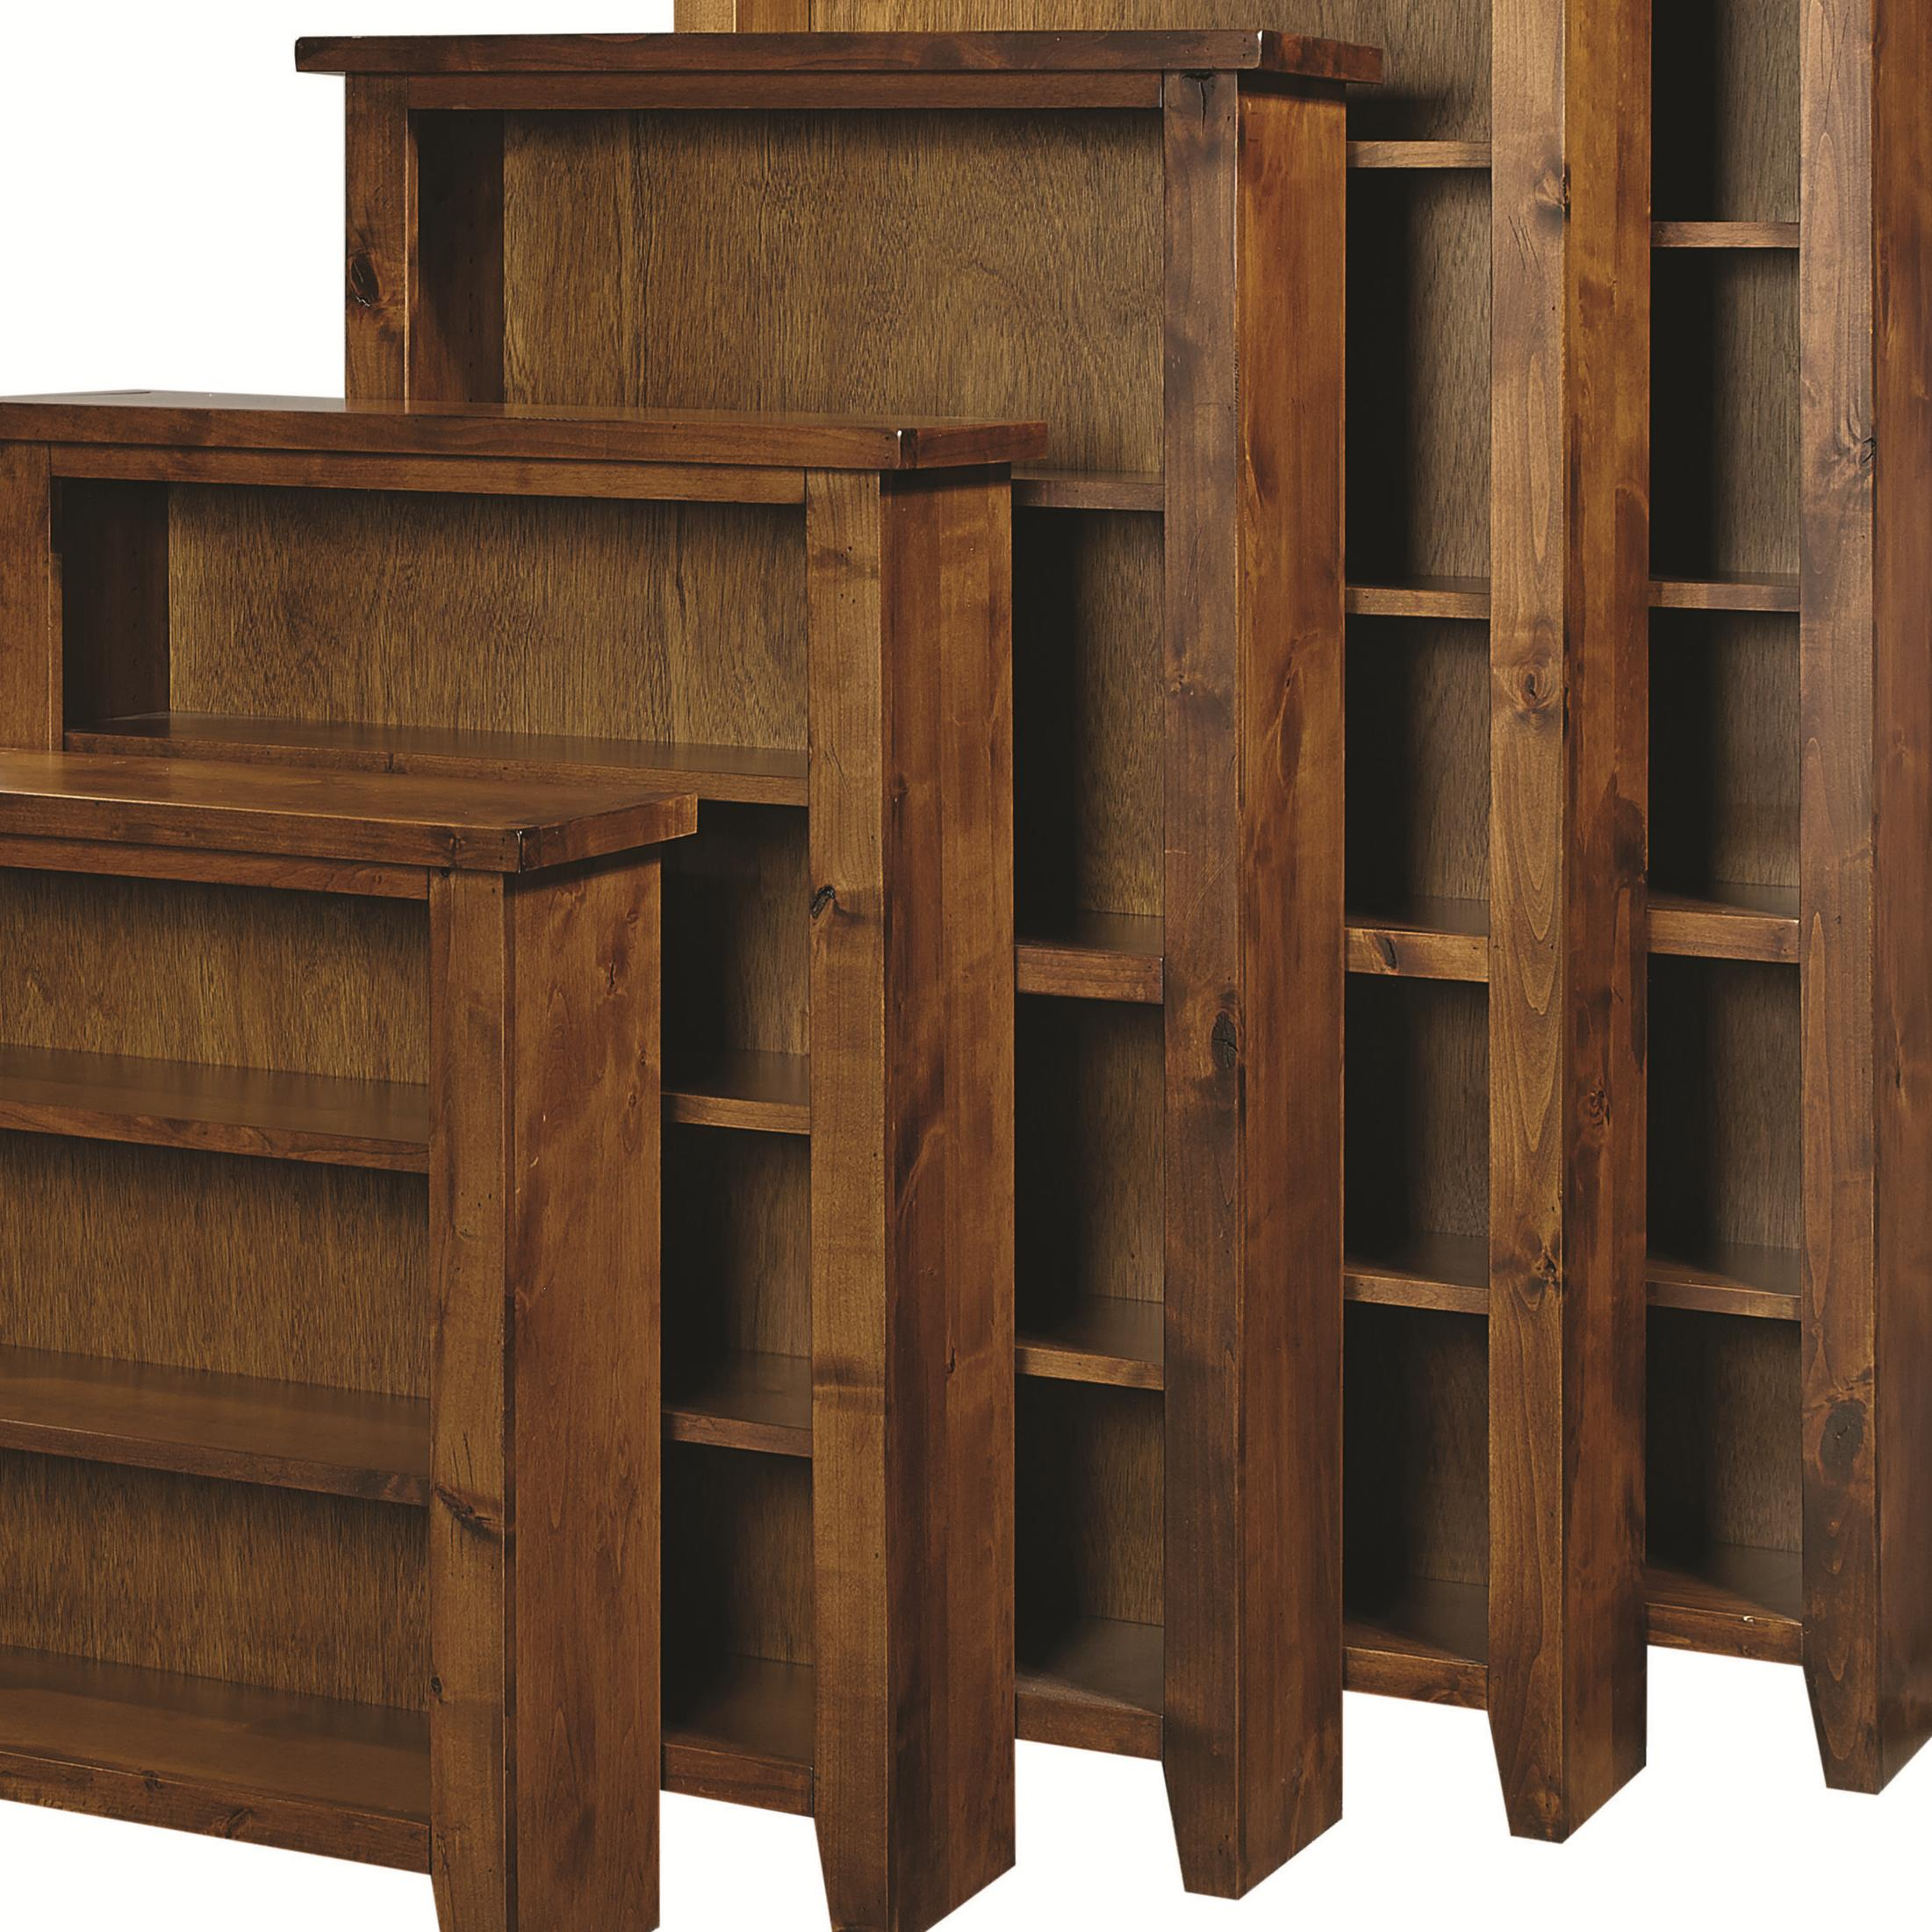 "Alder Grove Bookcase 60"" Height with 3 Shelves by Aspenhome at Fashion Furniture"